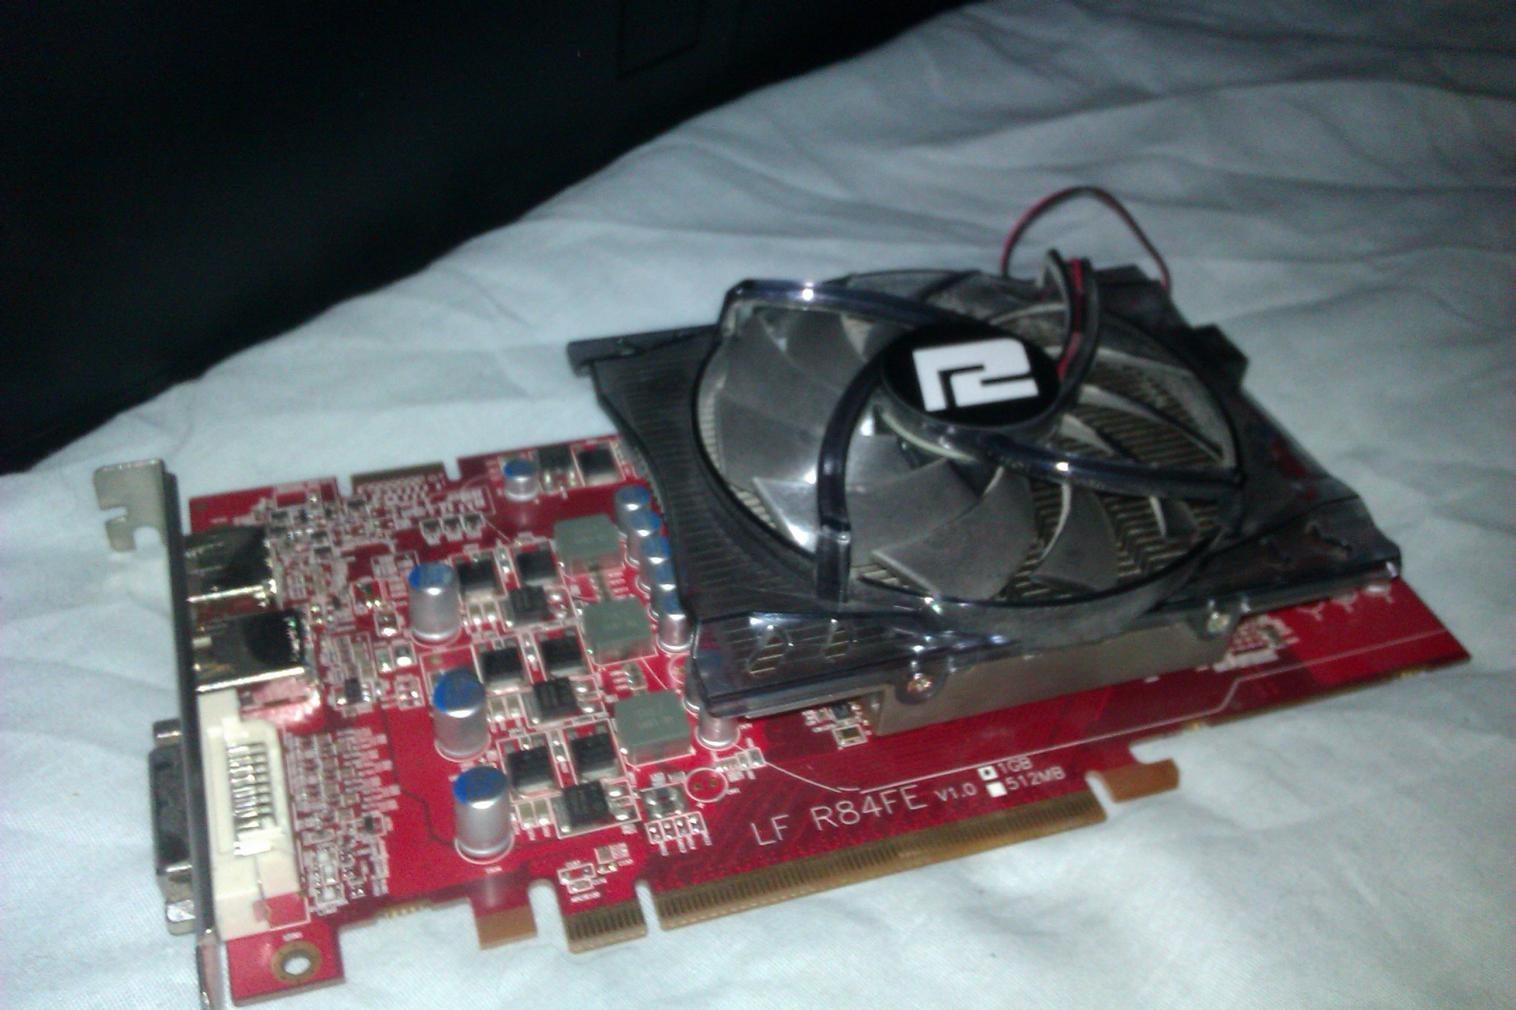 Powercolor 5770,the fan on this model is very silent,can turn it up to 100% and cant hear it at all!!